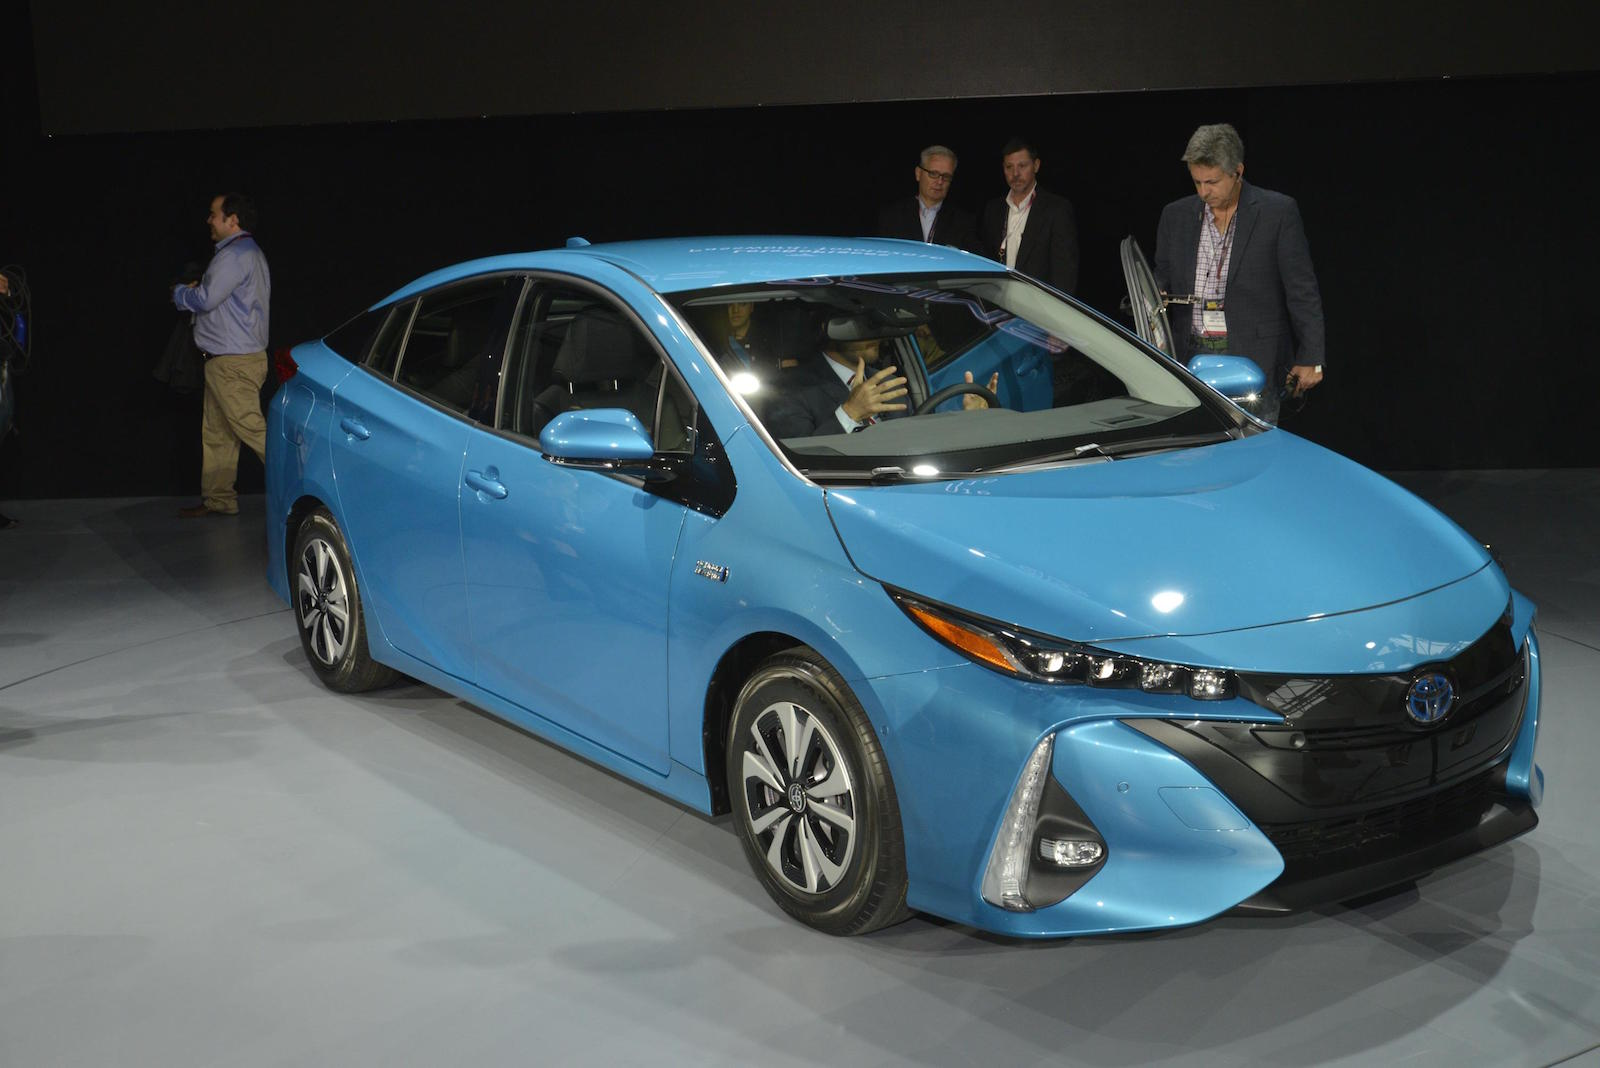 2017 toyota prius prime plug in hybrid 22 mile range styling updates live photos and video. Black Bedroom Furniture Sets. Home Design Ideas